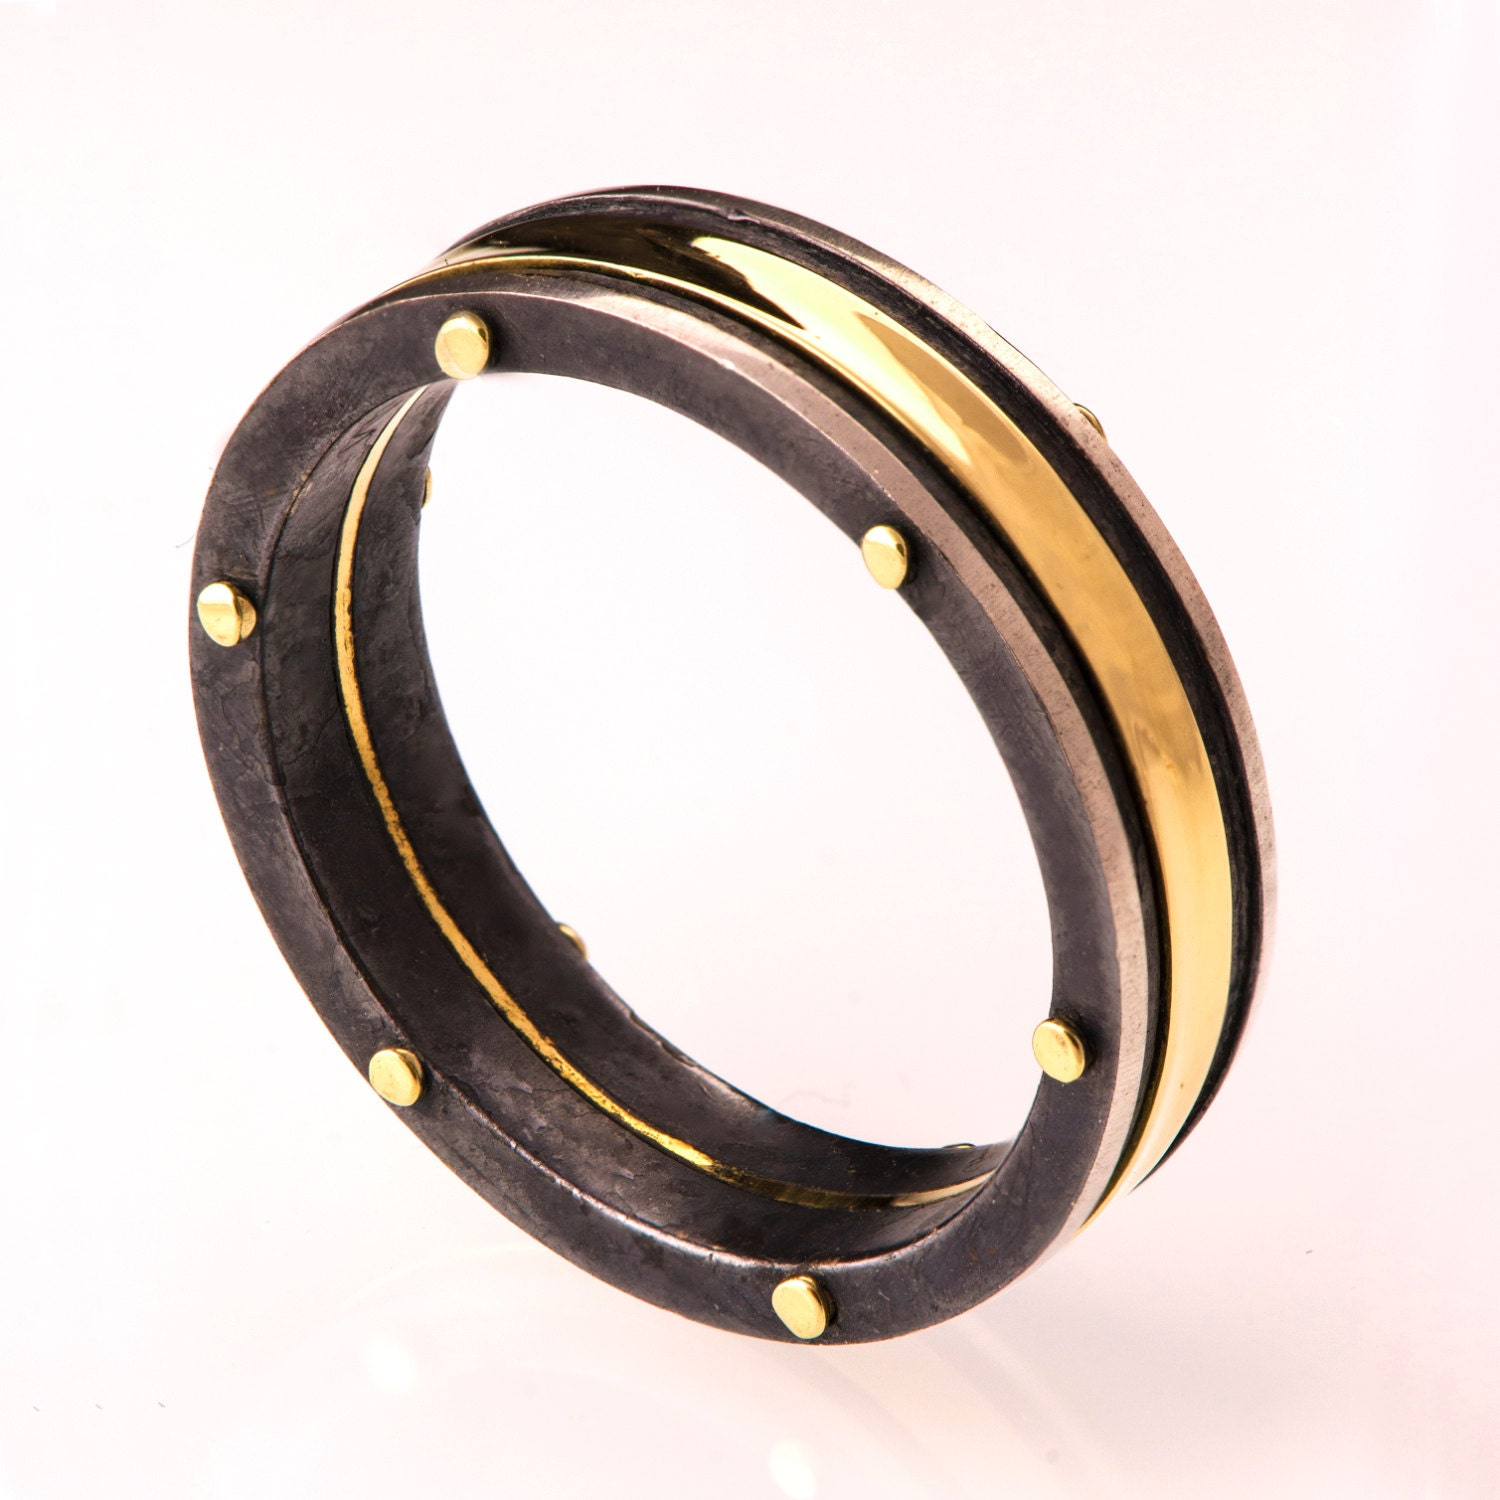 jewellery in itm oval earrings eternity gold tube ebay hoop